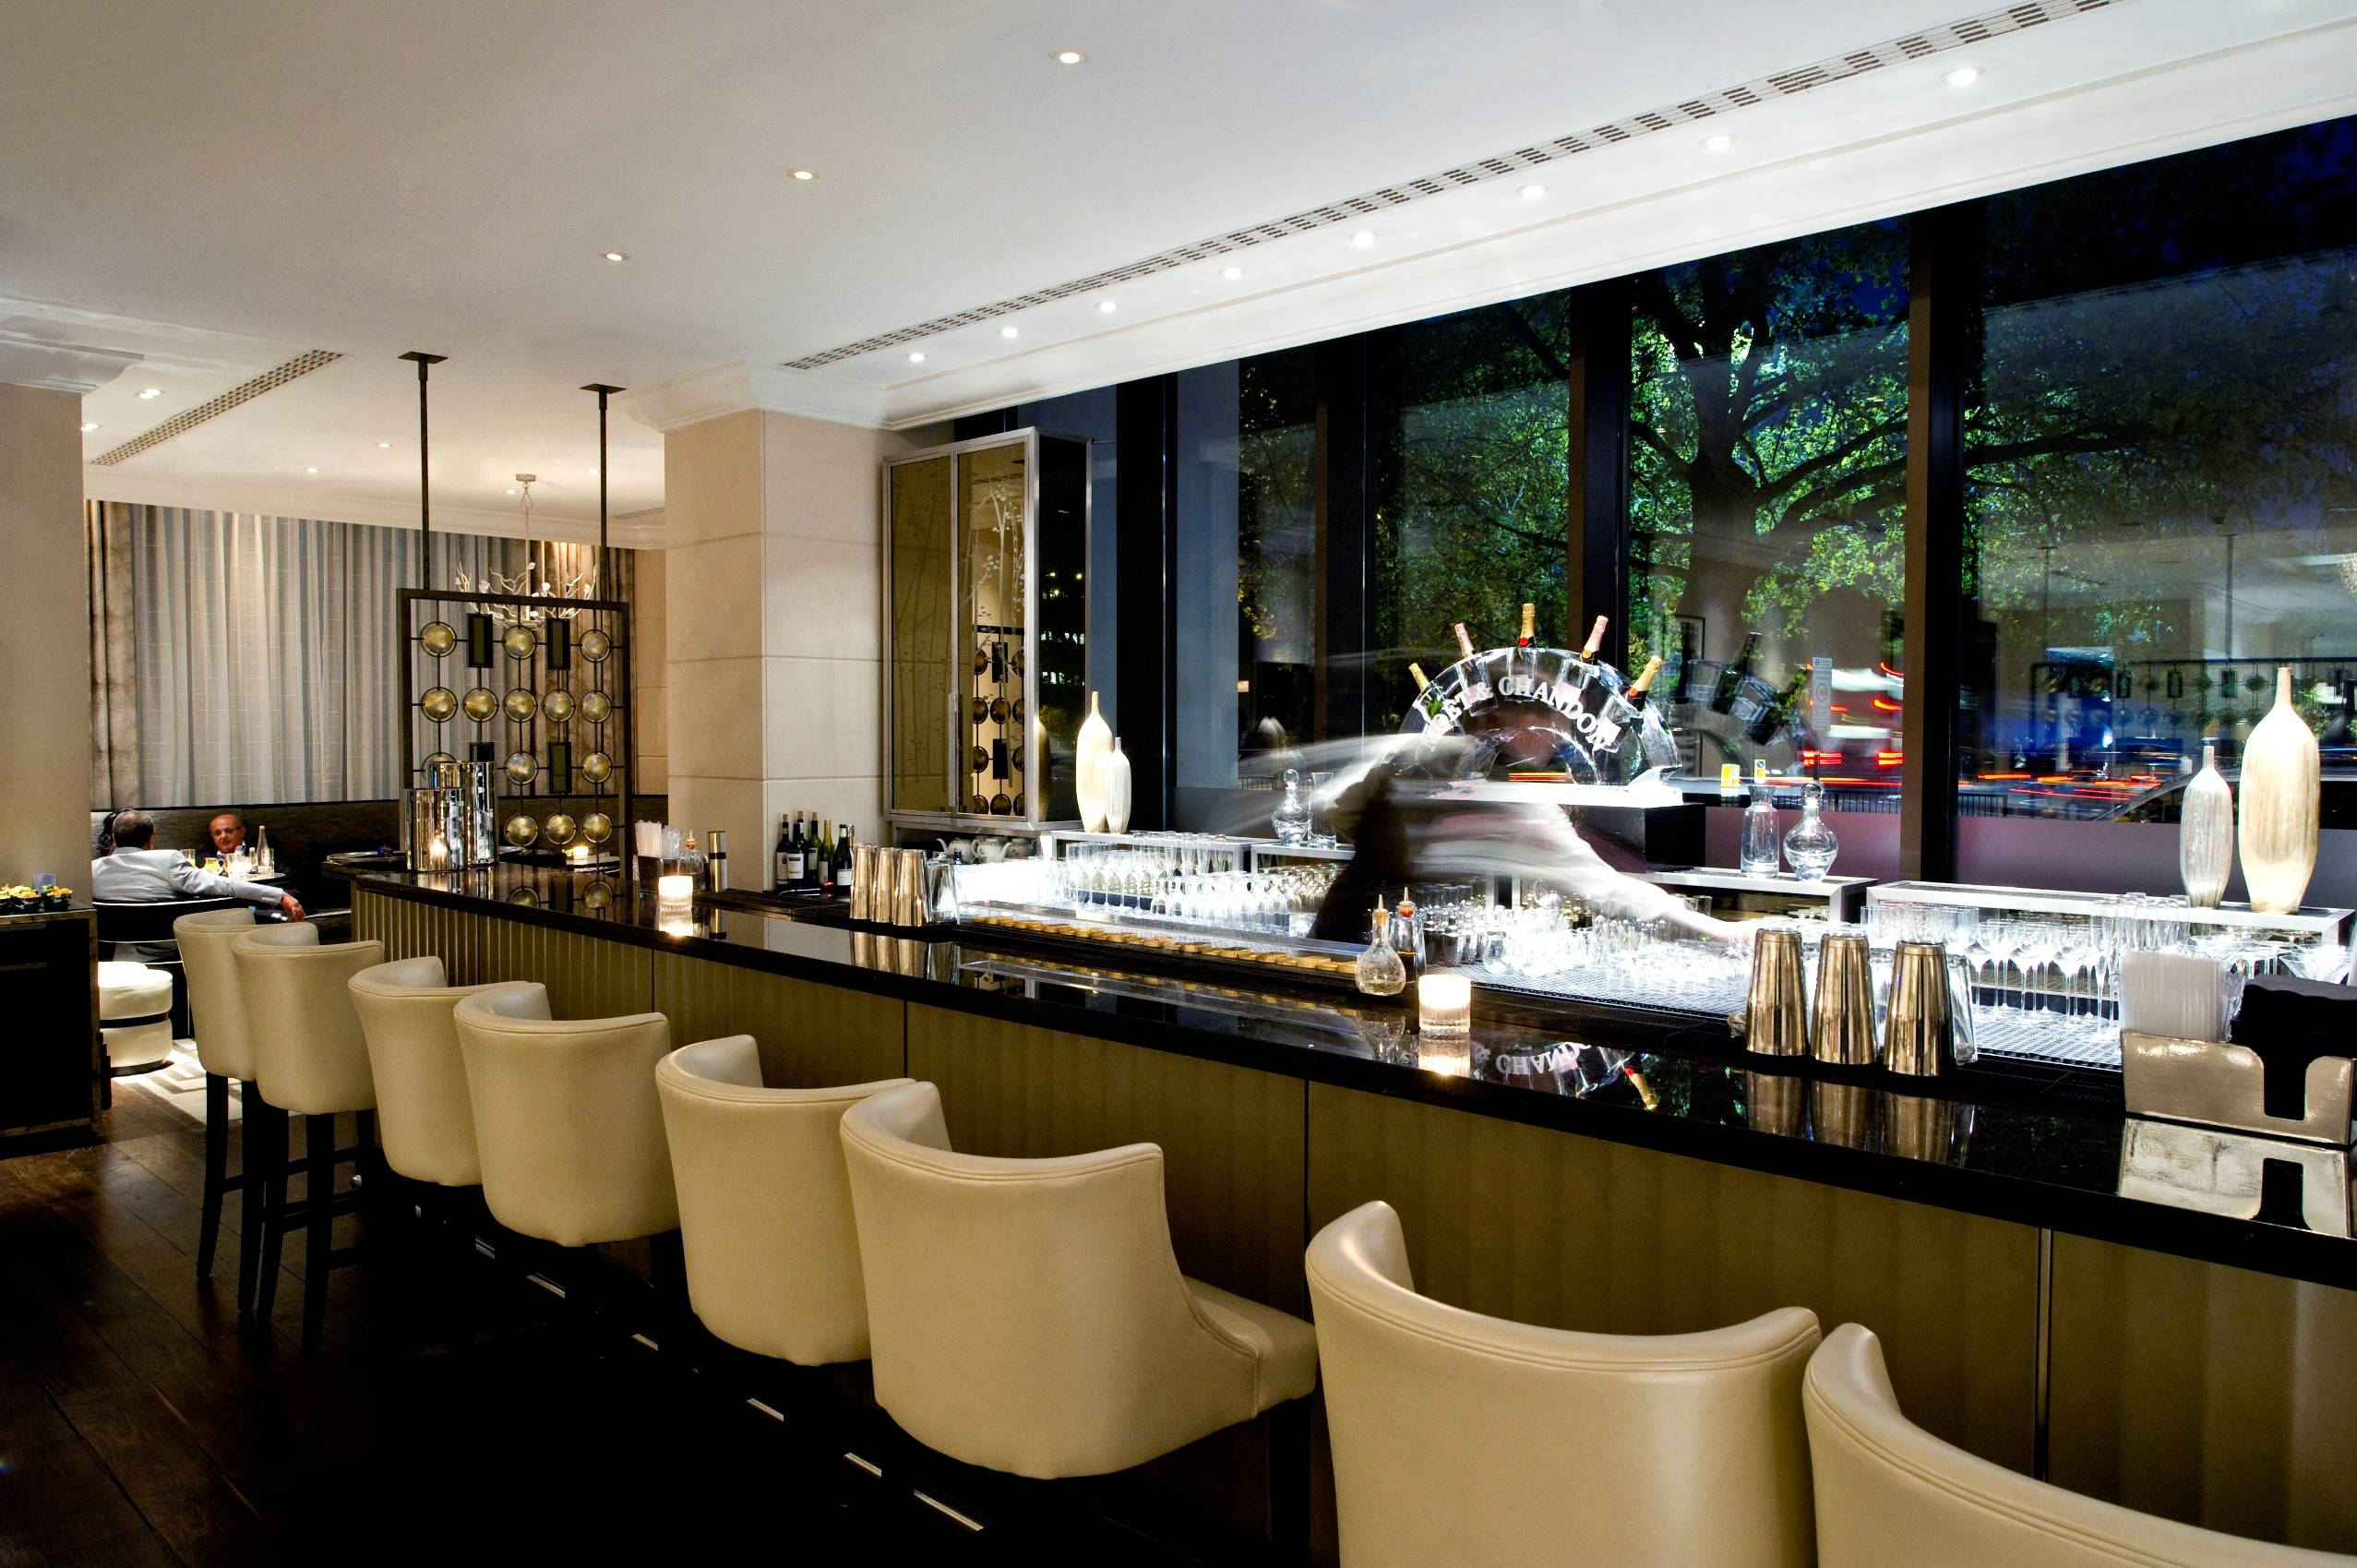 InterContinental London Park Lane to hold monthly 'Gin and Jazz' night